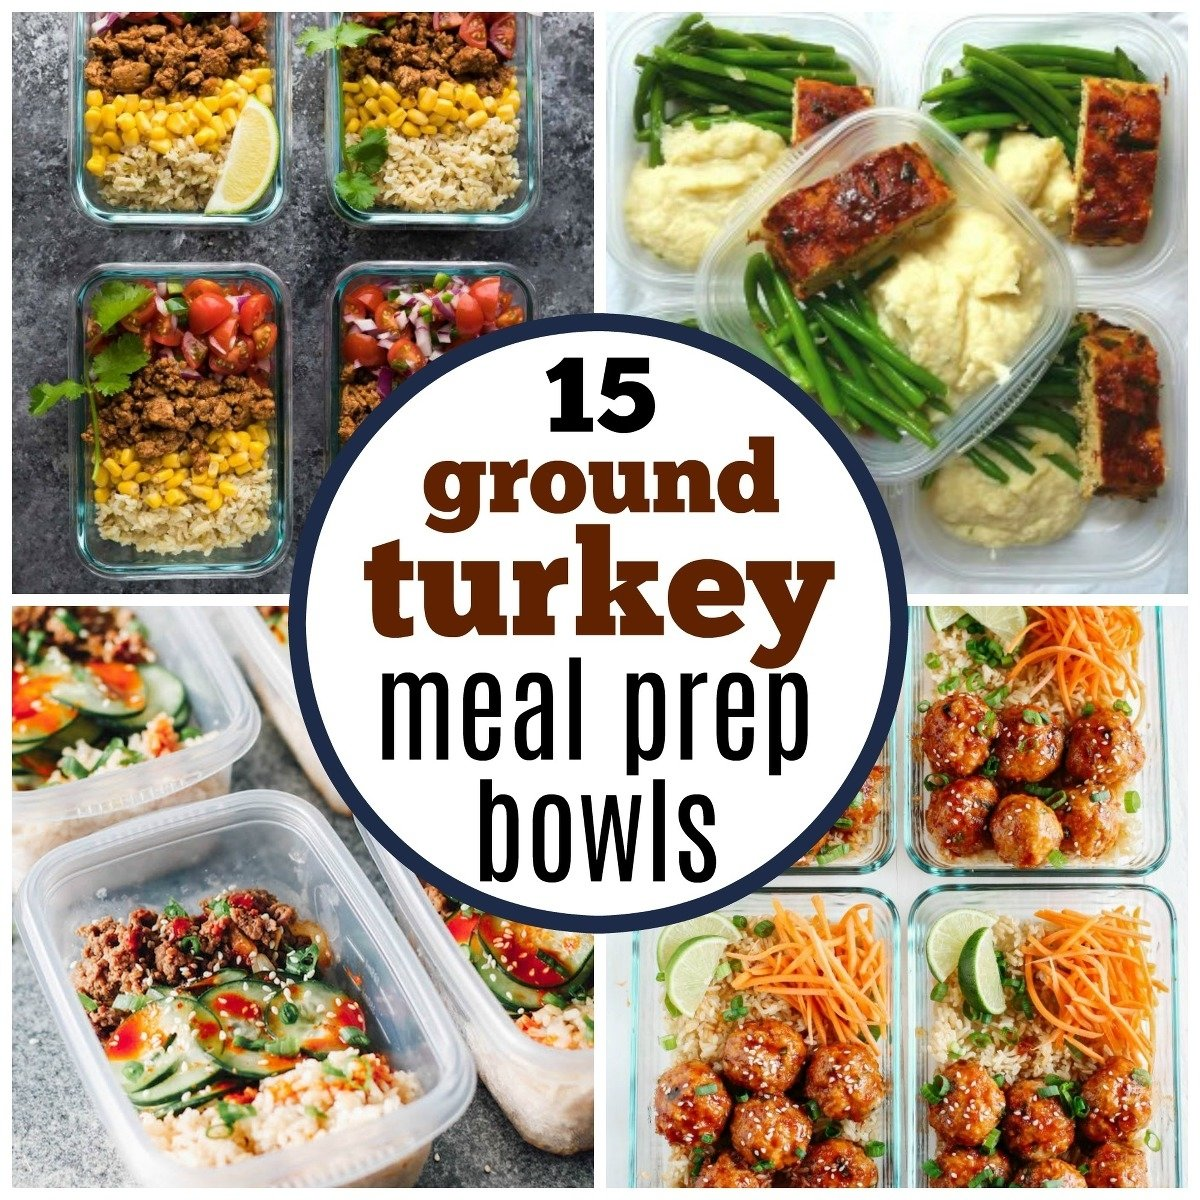 10 Attractive Meal Ideas With Ground Turkey 15 healthy ground turkey meal prep bowls my mommy style 2020